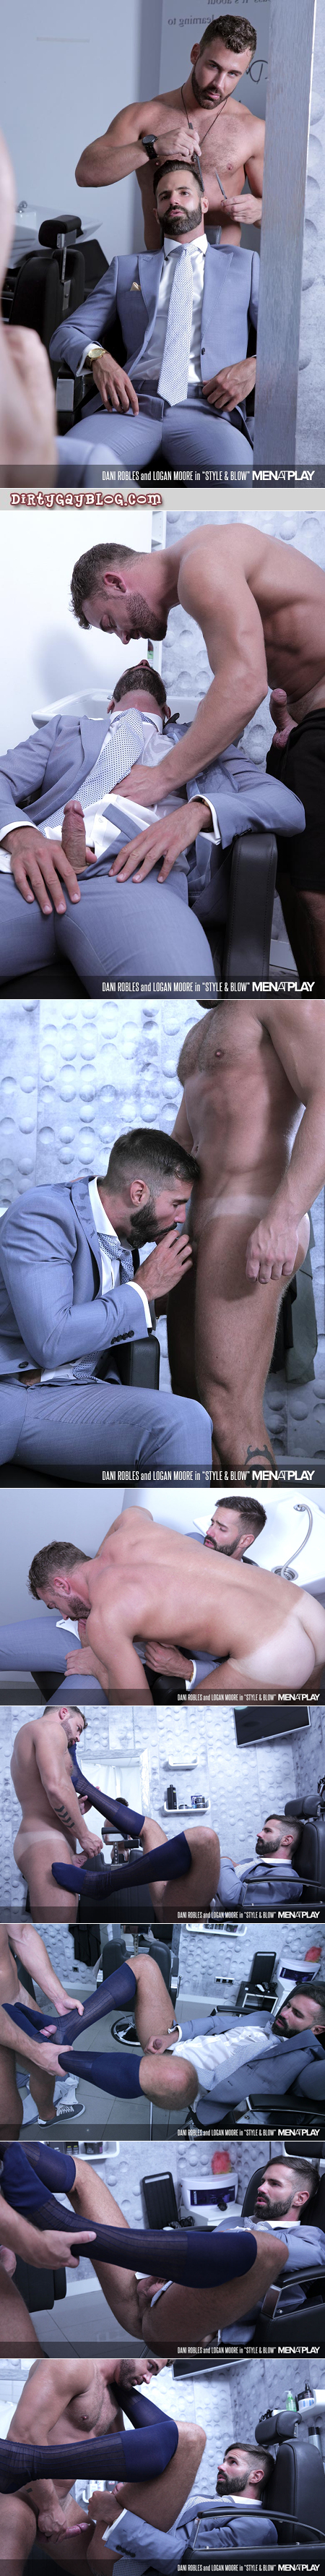 Hairy businessman getting fucking by his hunky barber.